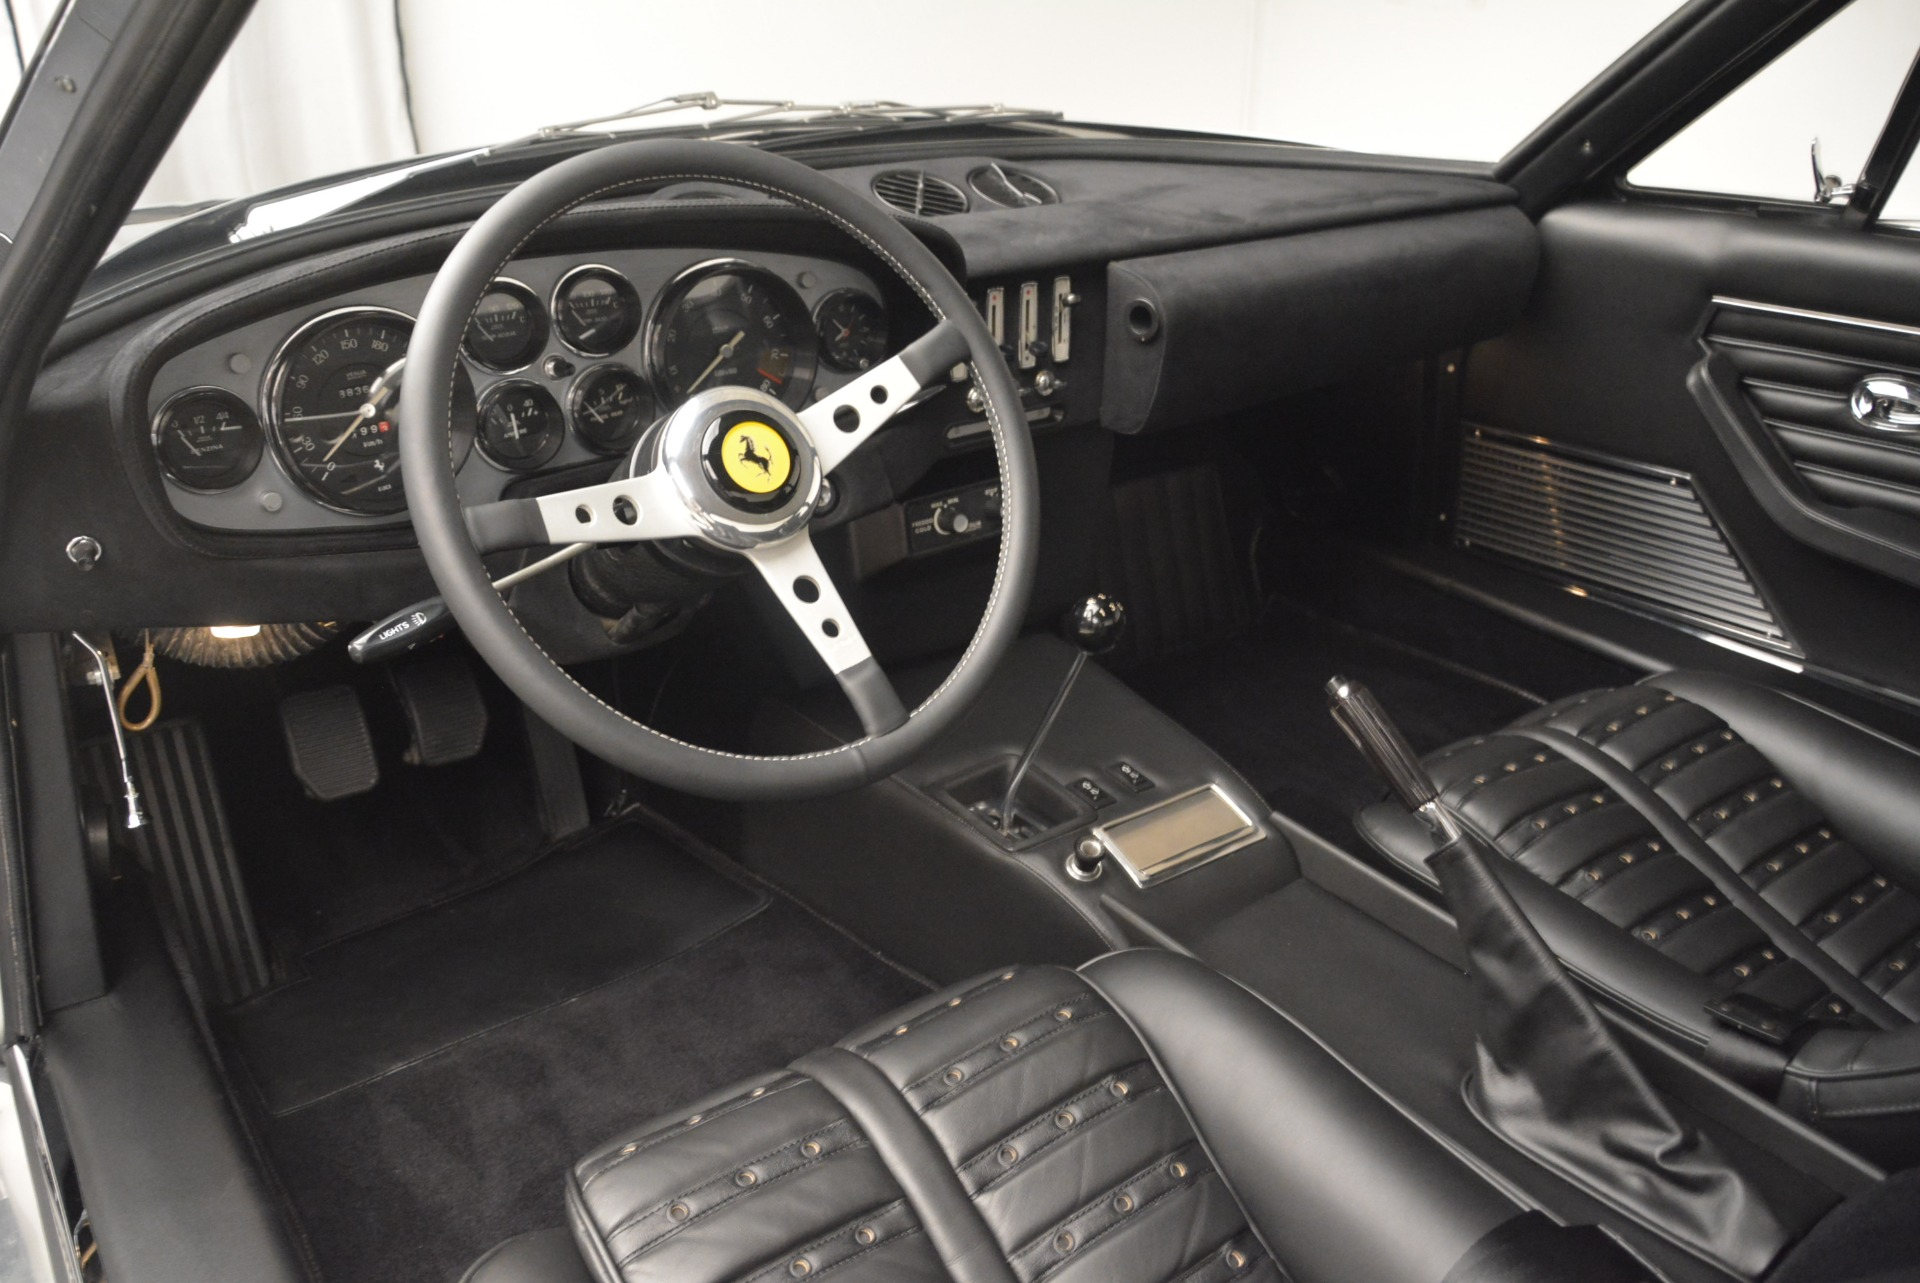 Used 1971 Ferrari 365 GTB/4 Daytona For Sale In Greenwich, CT 2146_p9